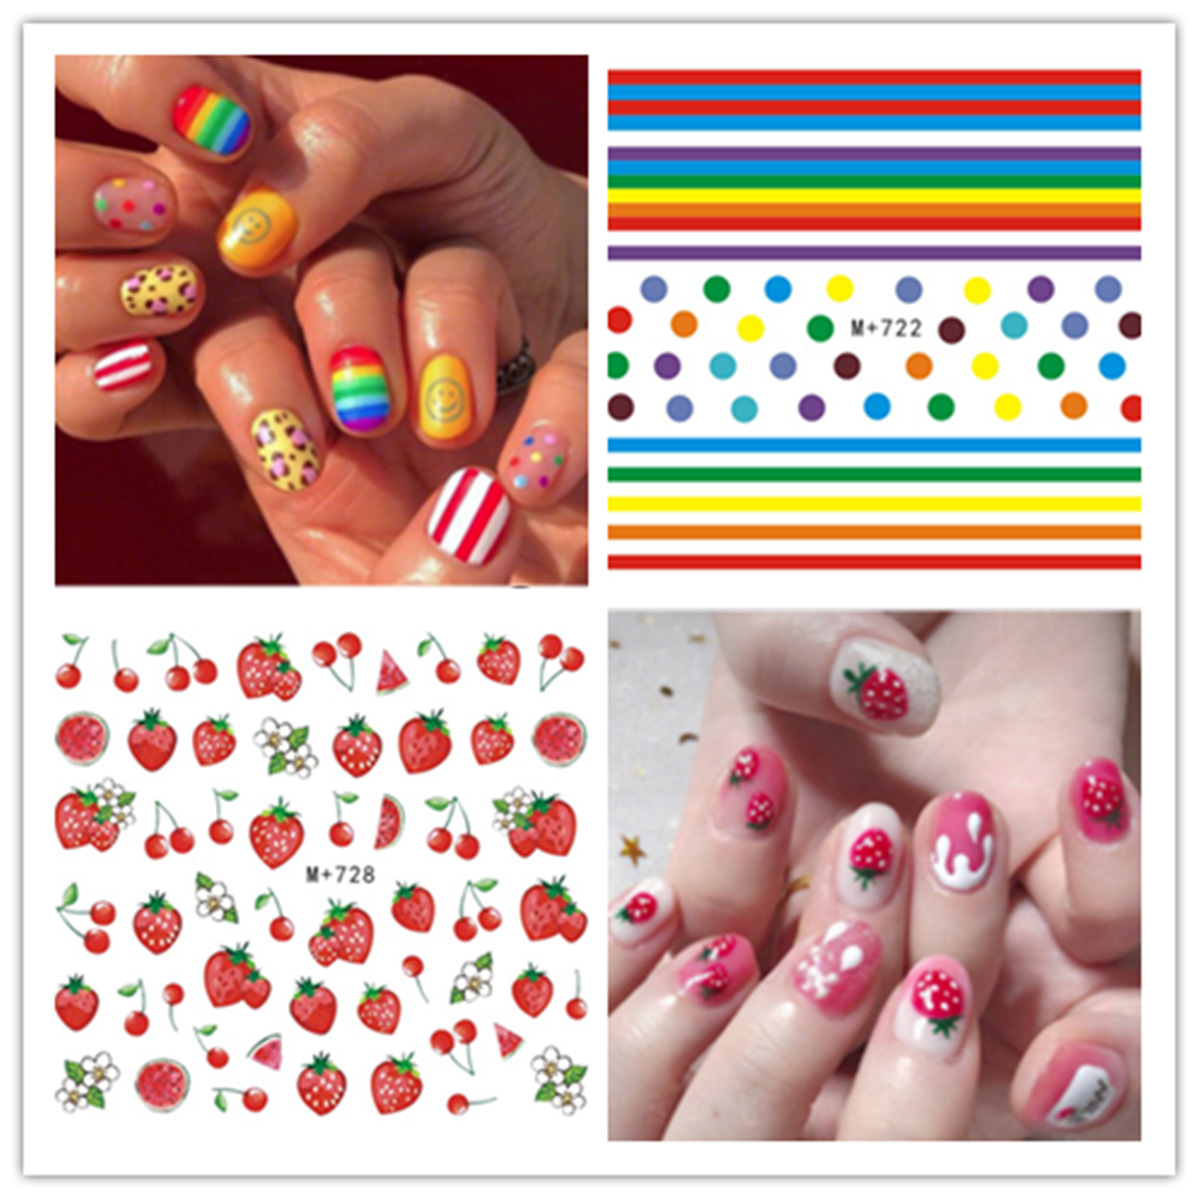 M + 722-756 Nail Sticker Paper Network Red-Weep Yafeng Cute Poached Egg Polka Dot Strawberry Nail Watermark Flower Stickers